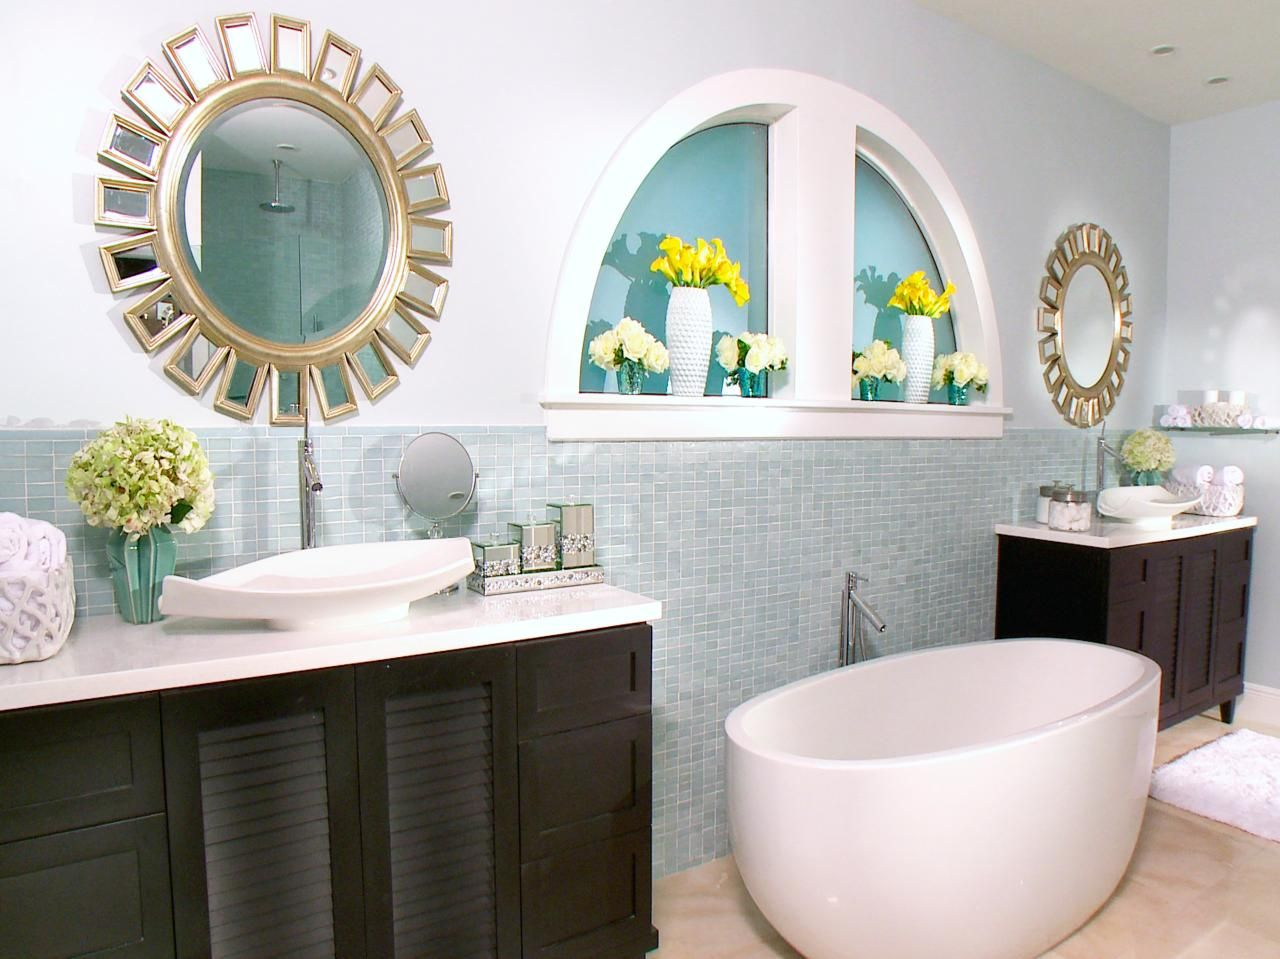 Clawfoot Tub Designs: Pictures, Ideas & Tips From   White vessel ...